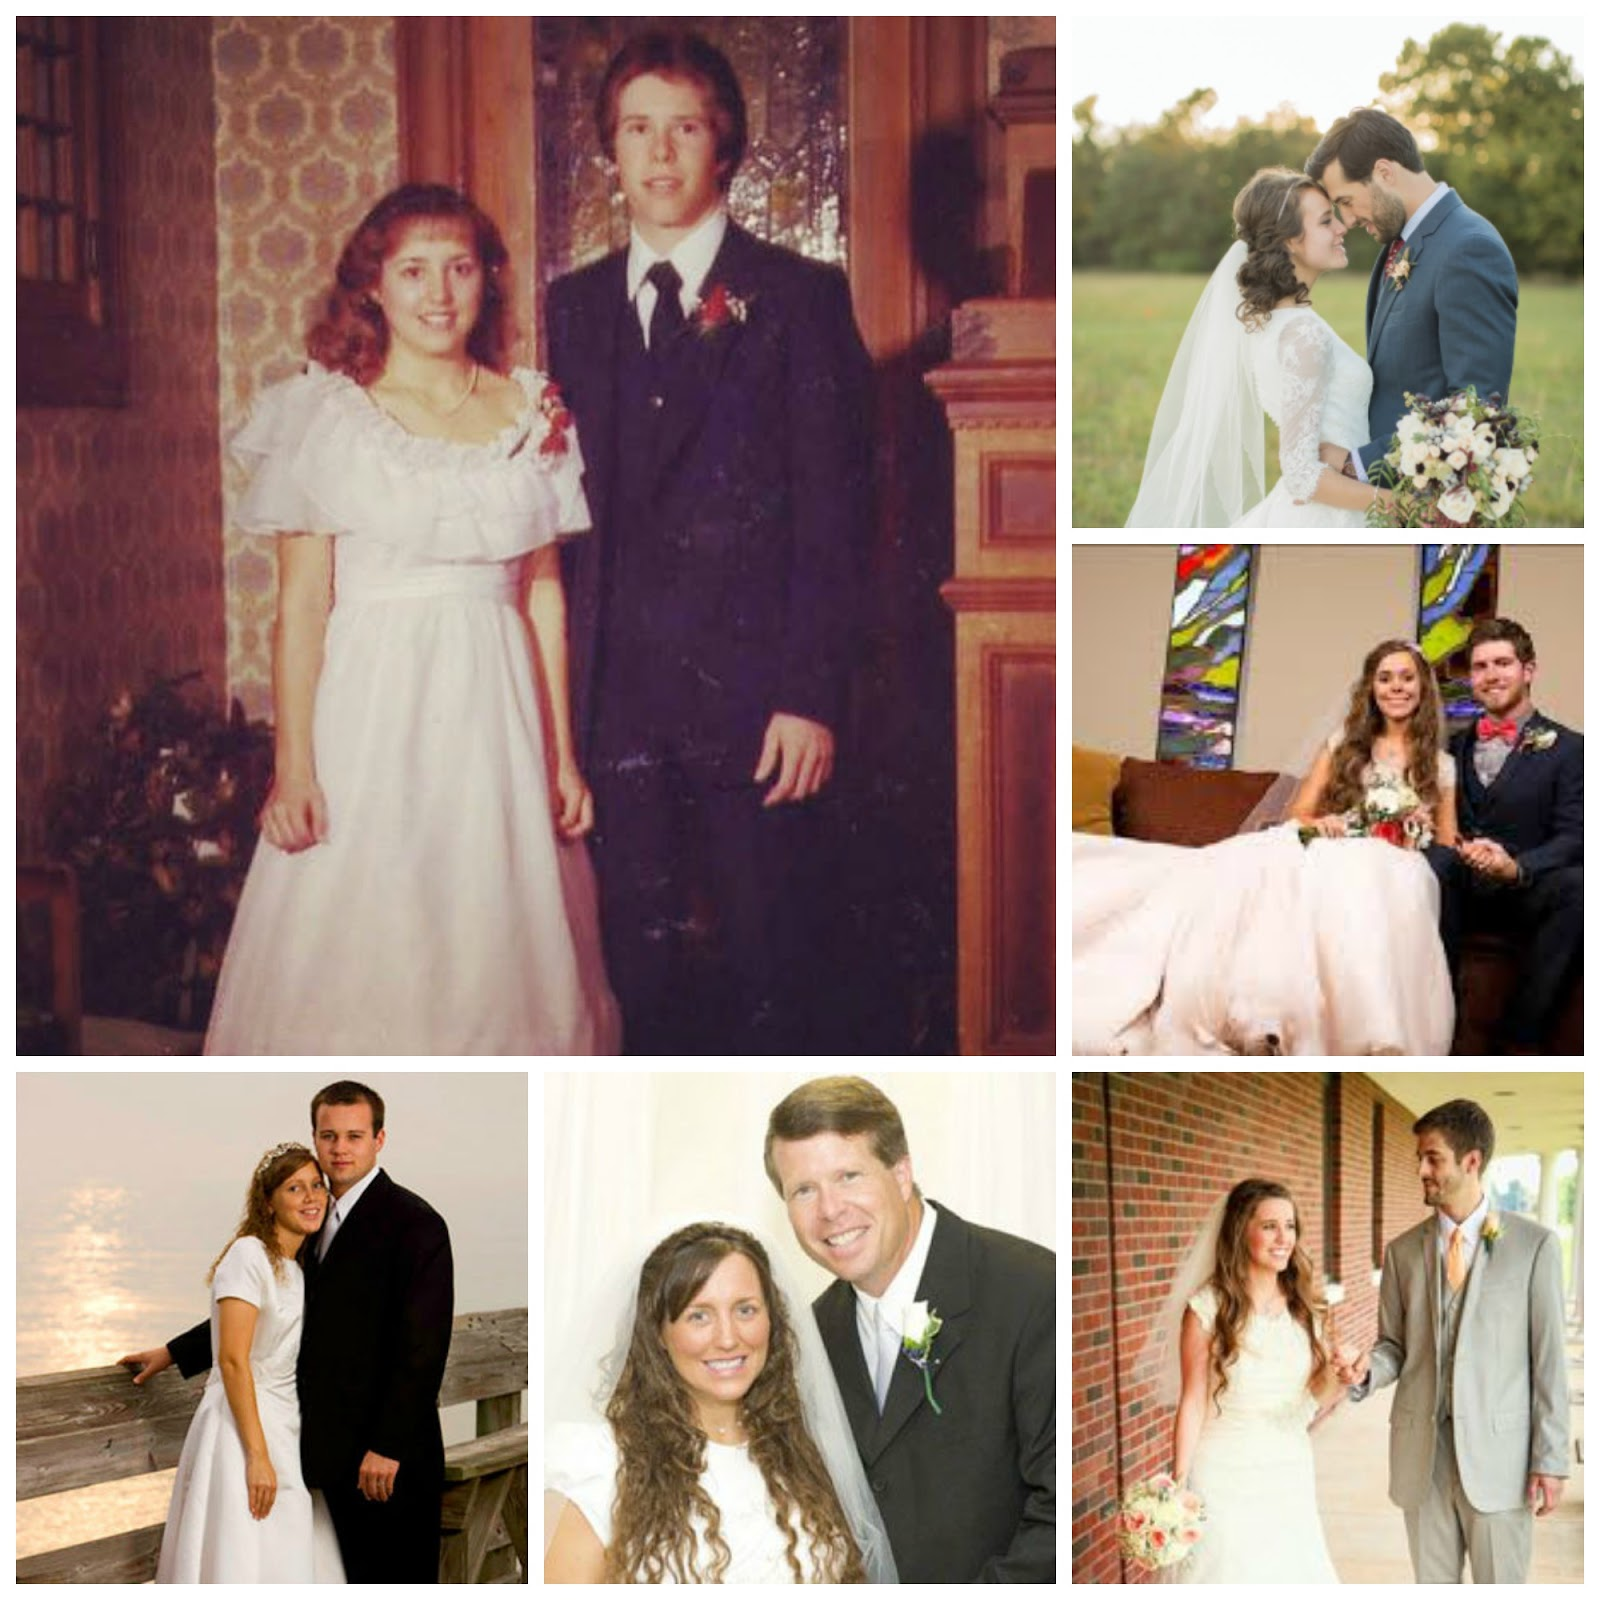 The Duggar Family Blog: Duggar Married Couples